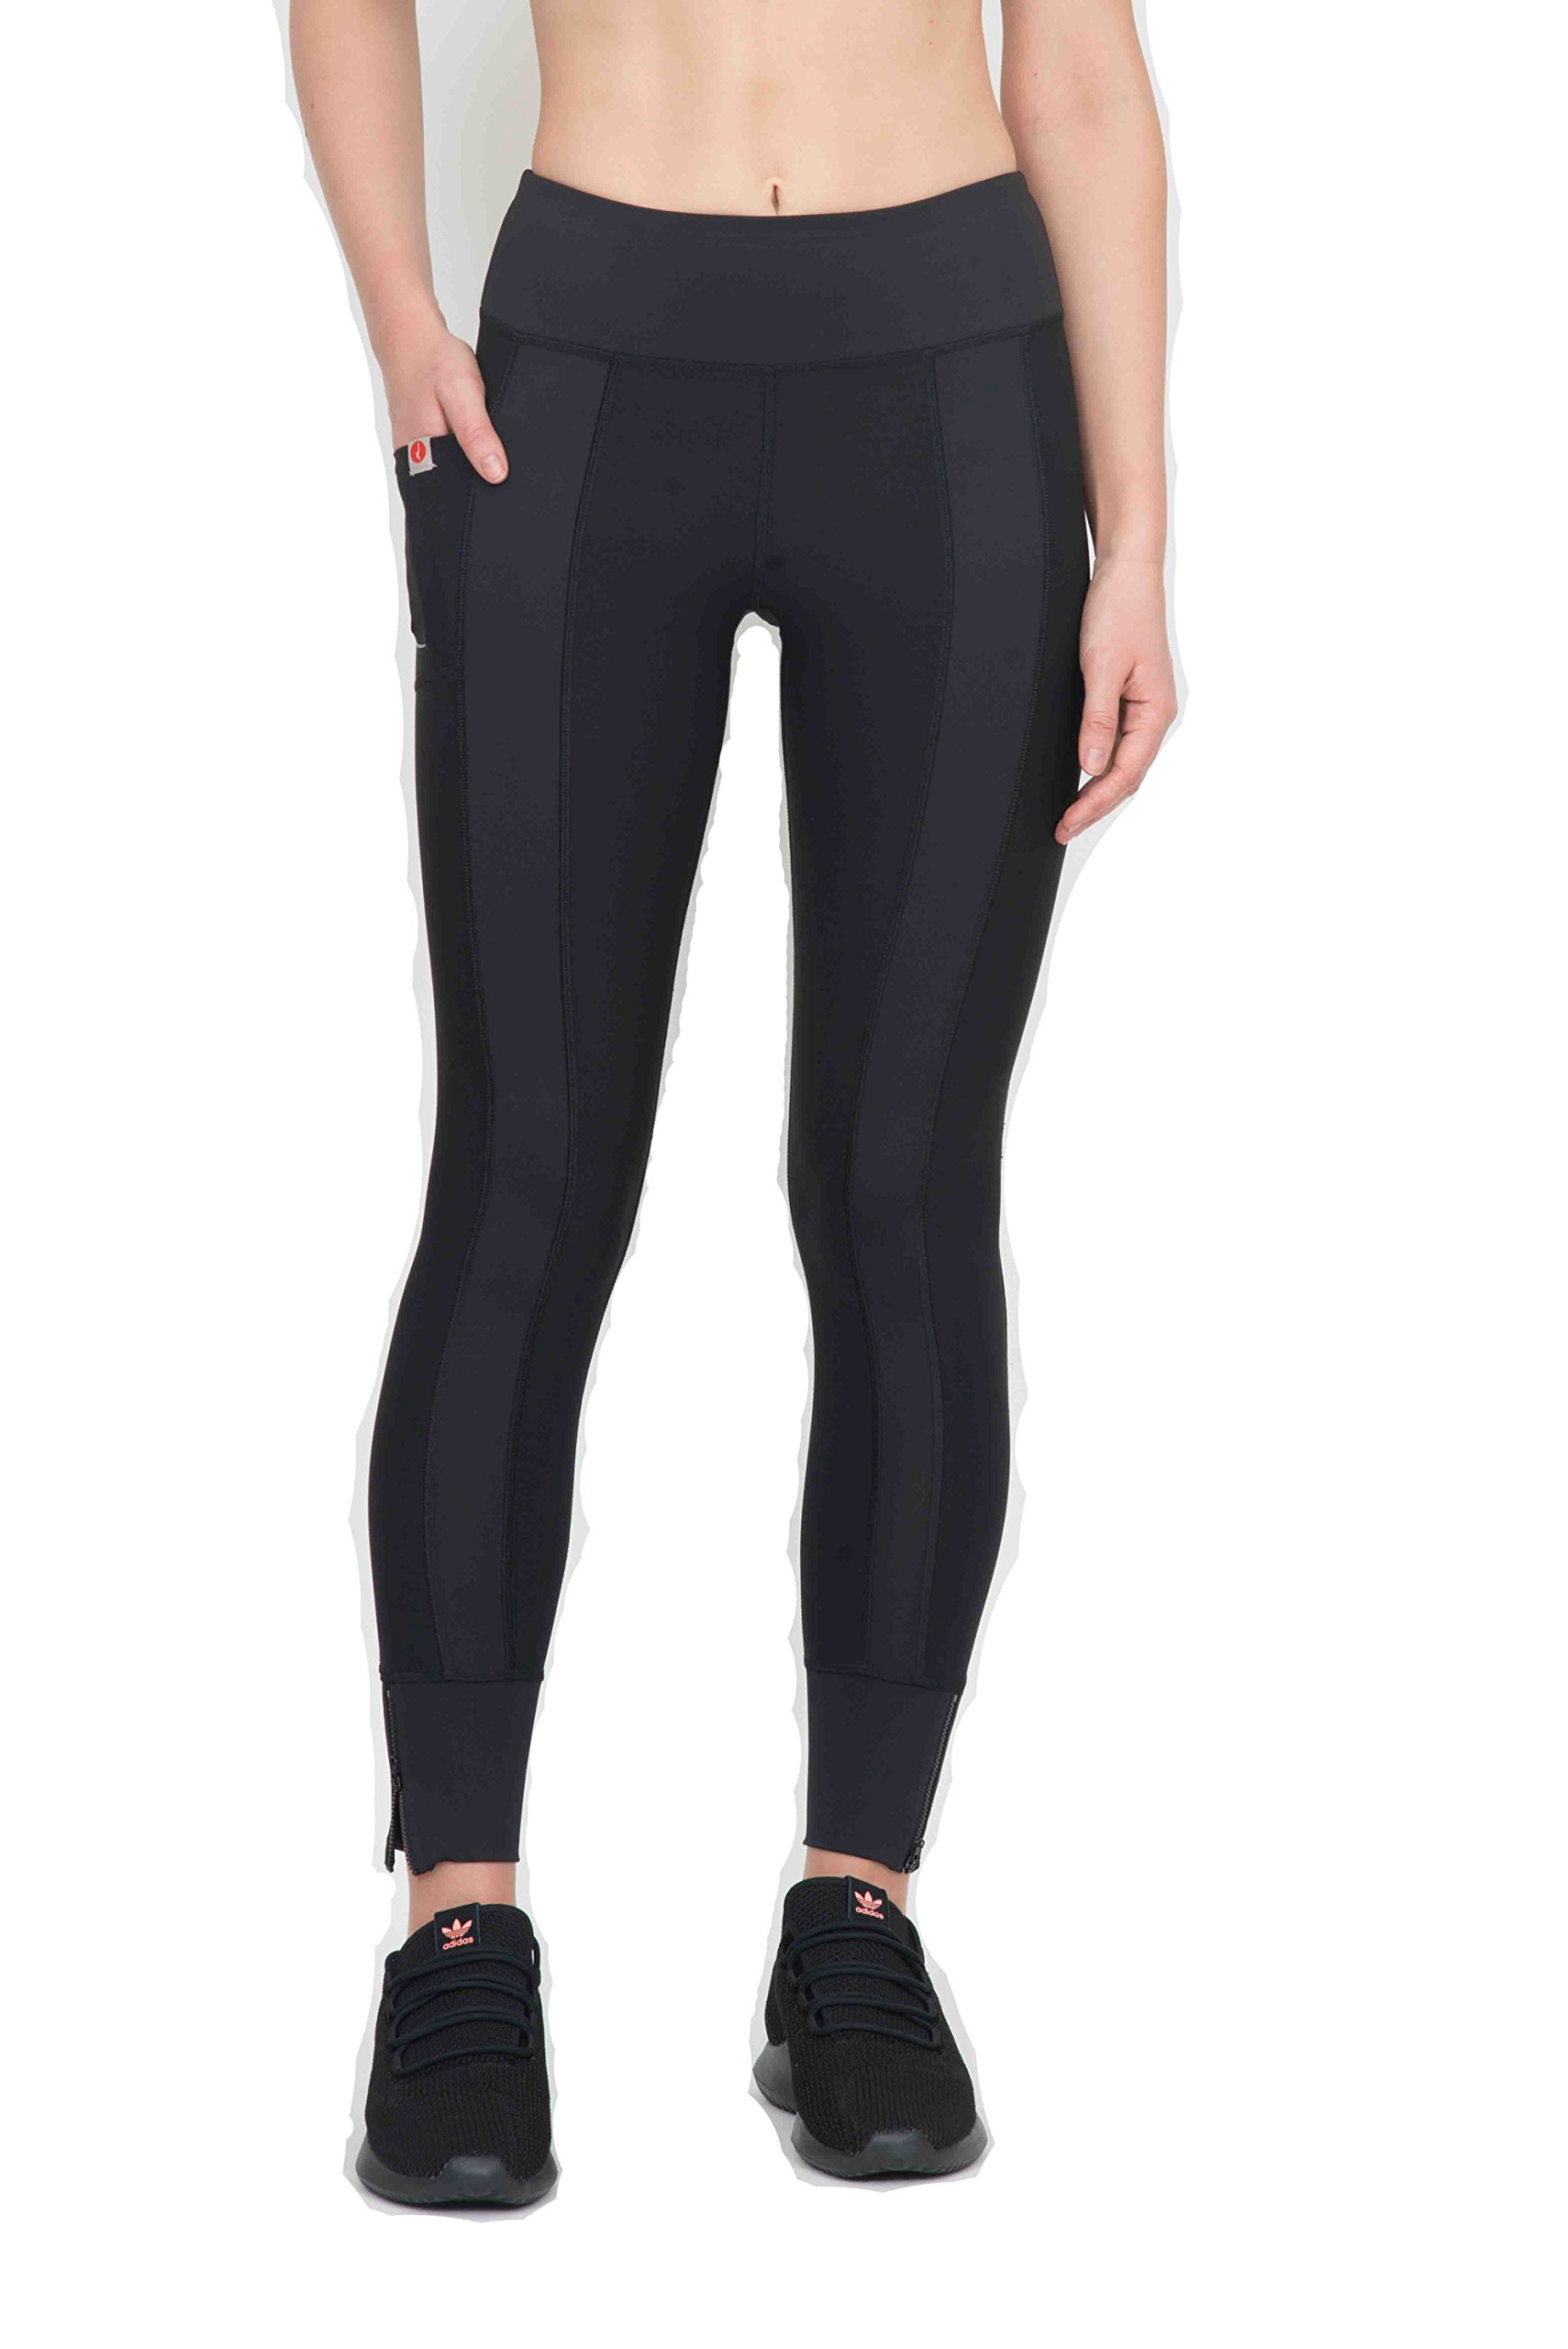 X by Gottex Workout Leggings   Unique, Printed & Stylish Activewear with Easy Access Pocket   88% Polyester & 12% Spandax Fabric   Stretchable, Breathable & Dry Fit   Full Length & High Waist  Chintz